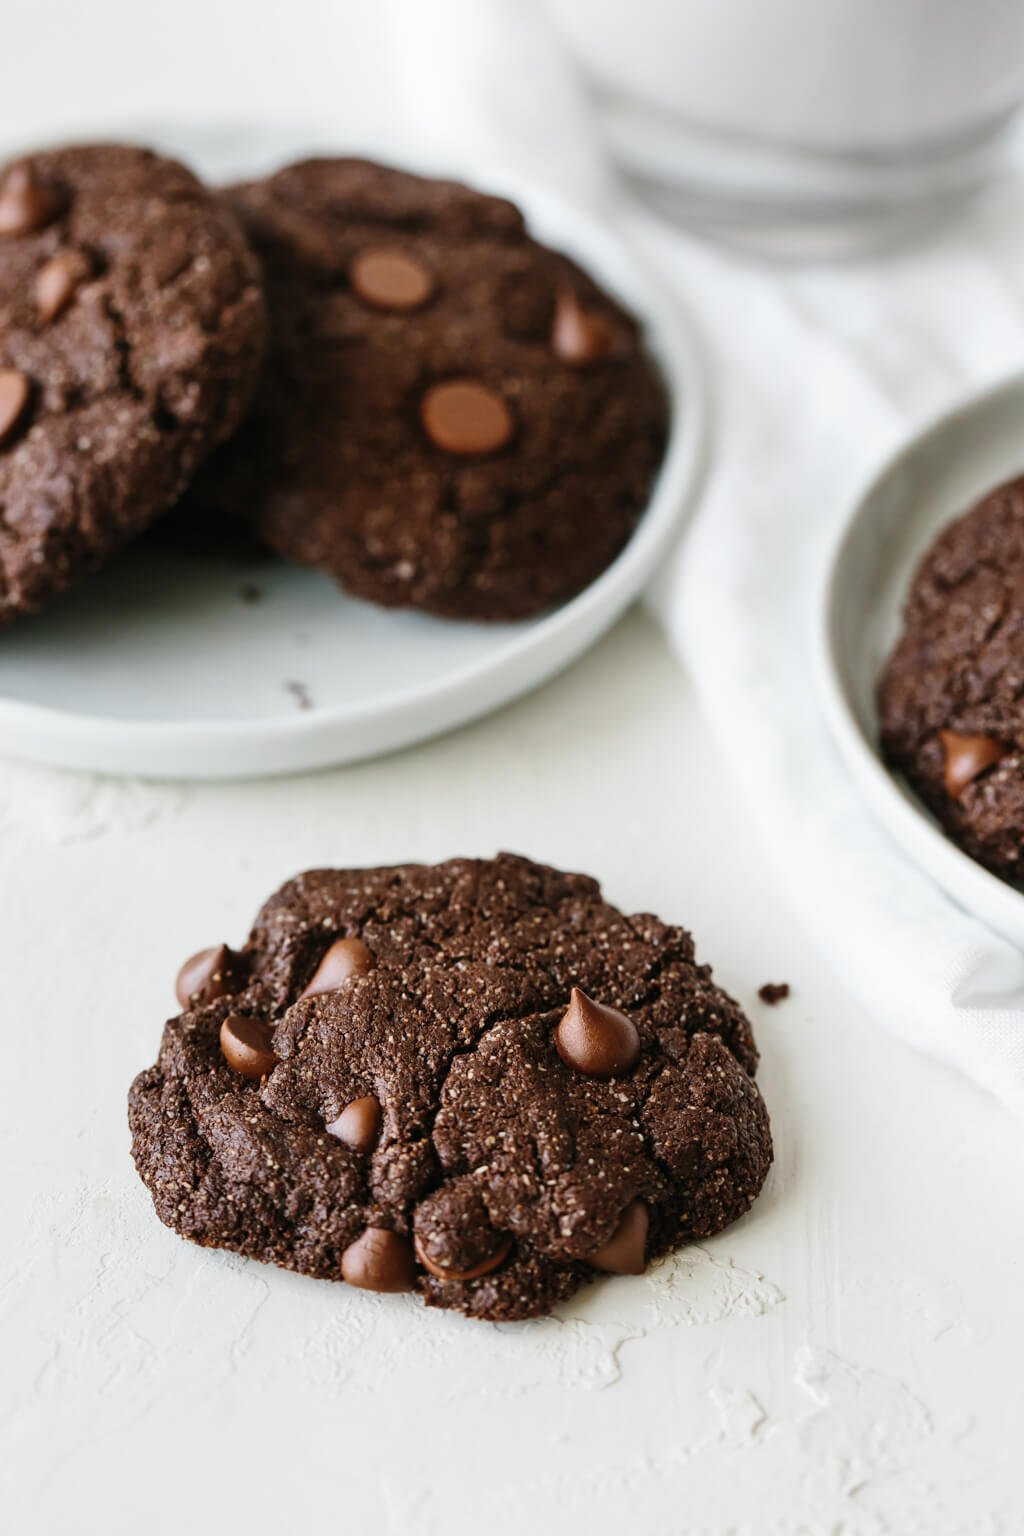 These gluten-free, paleo-friendly mint double chocolate cookies are rich, decadent and highly addictive. They're firm on the outside and lusciously soft on the inside.